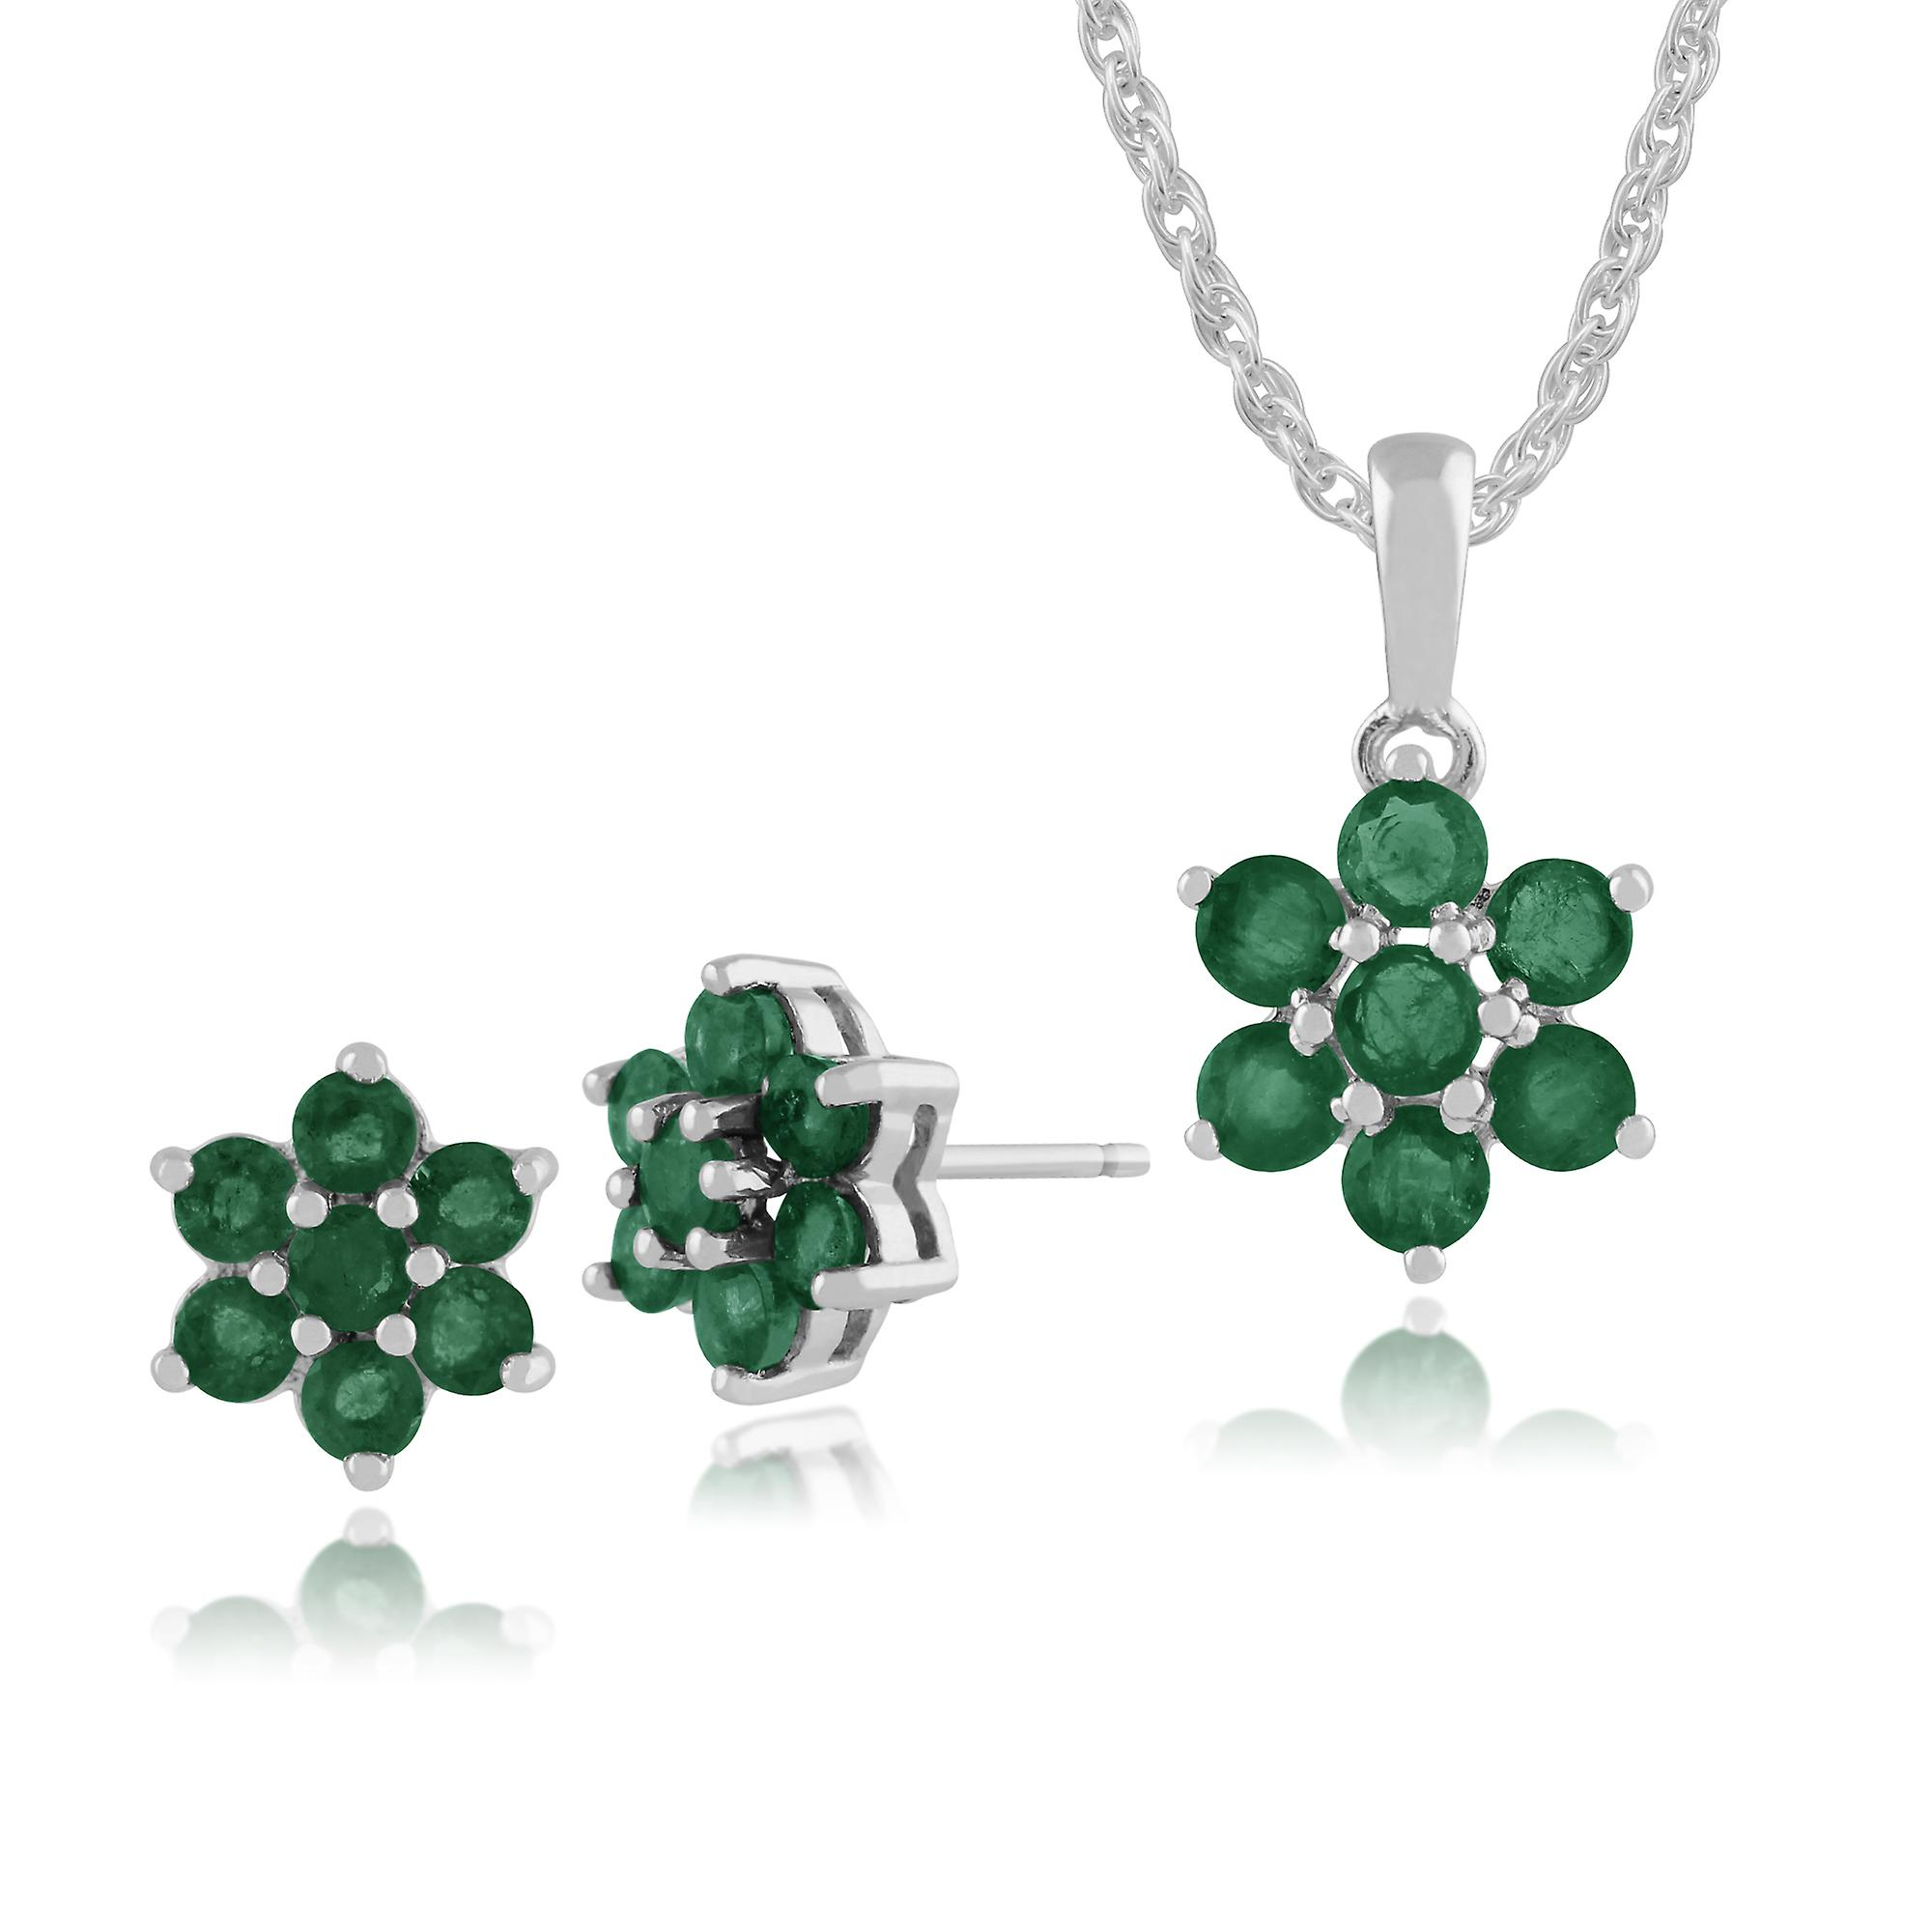 Gemondo 925 Sterling Silver Emerald Floral Stud Earrings & 45cm Necklace Set